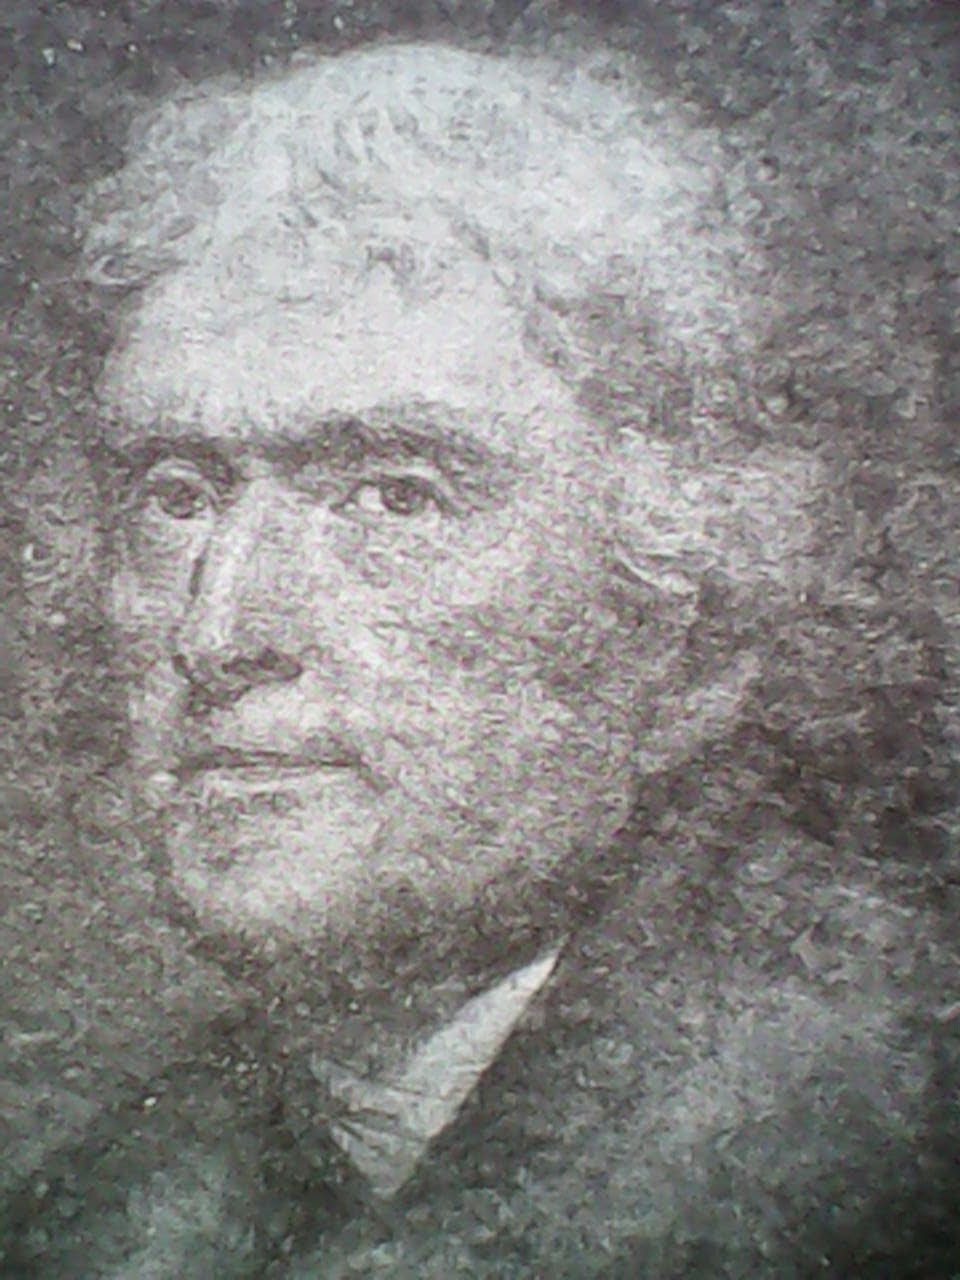 THOMMAS JEFFERSON 1743 - 1826 (Foto: SP)